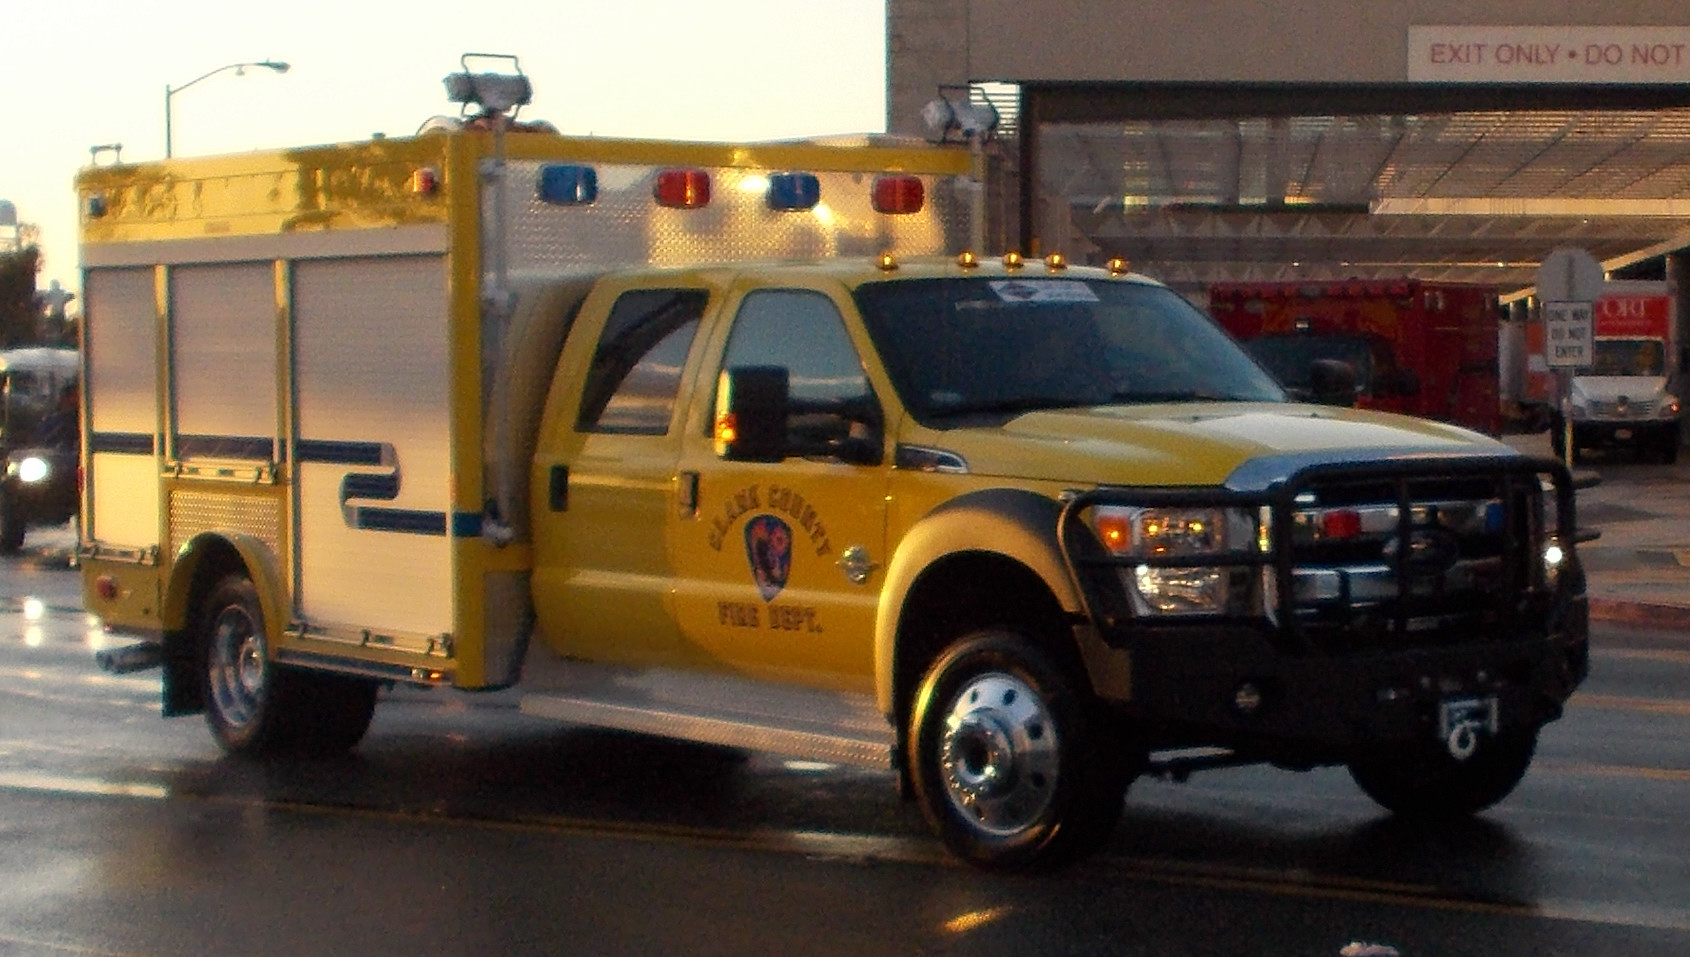 Freightliner Las Vegas Nv >> NV, Clark County Fire Department Special Operations